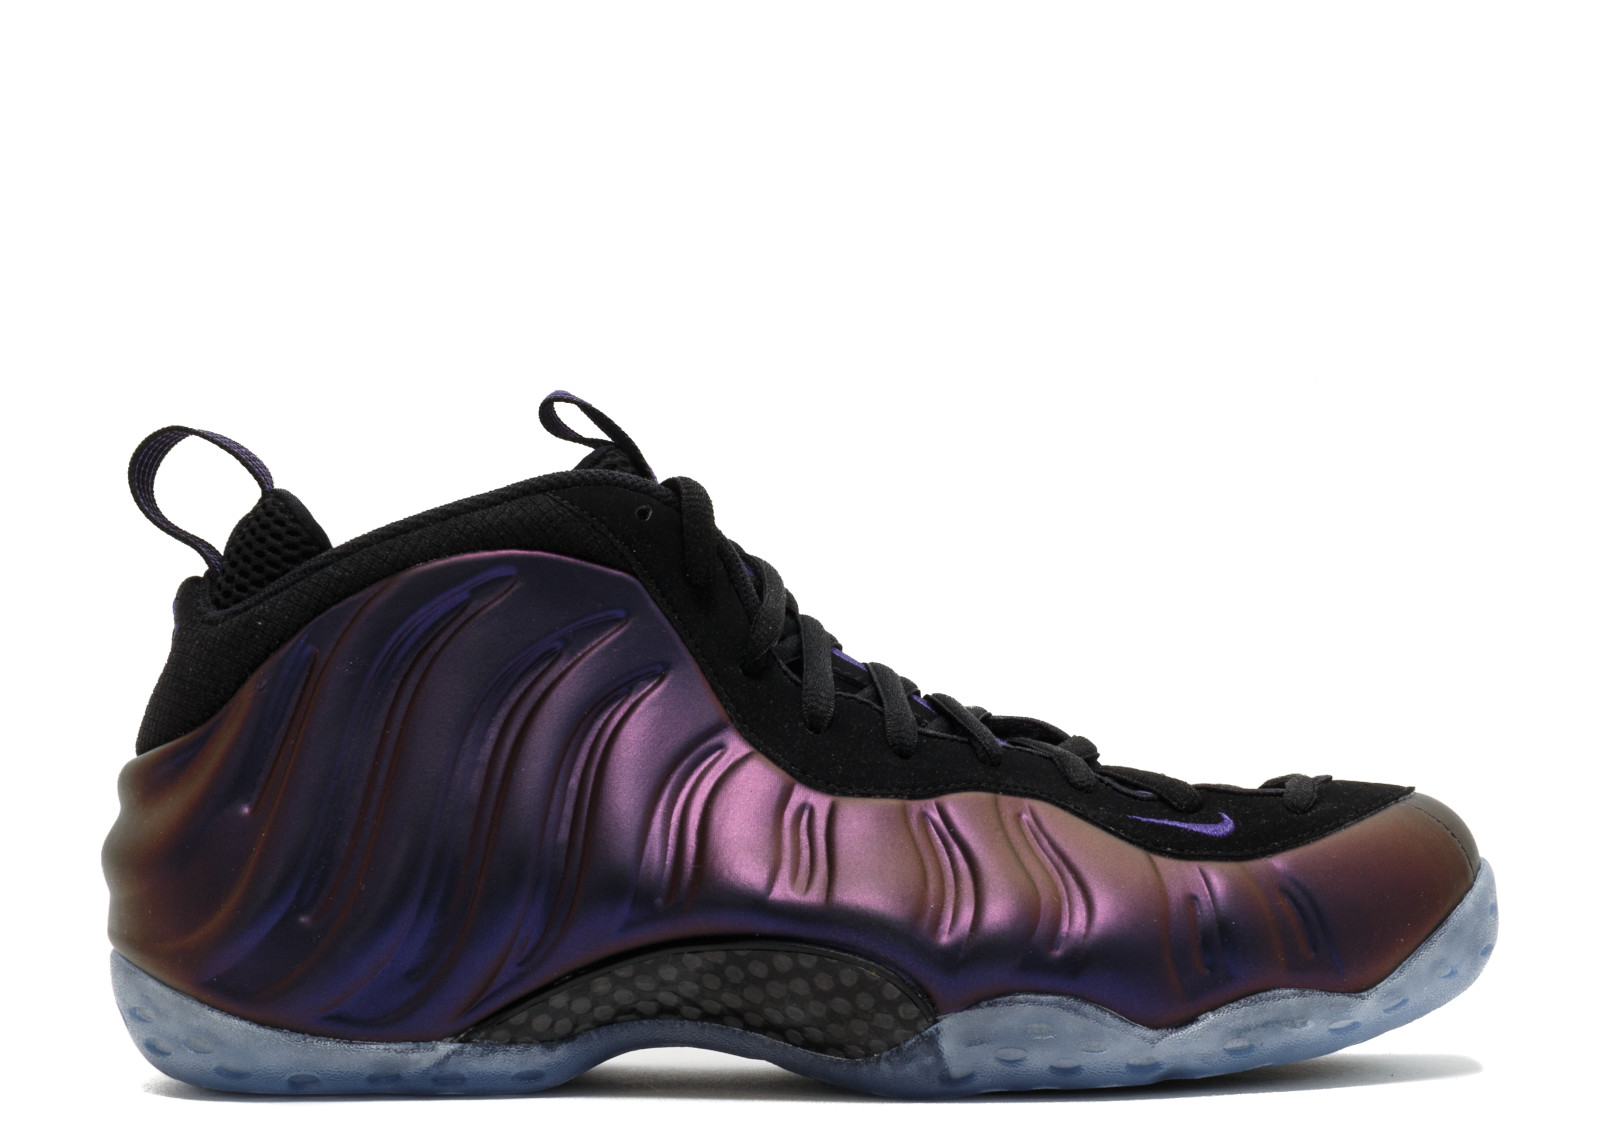 best service fb73f 7dd44 ... sale nike mens nike air foamposite one eggplant black varsity purple  314996 008 walmart aa0c7 e08b1